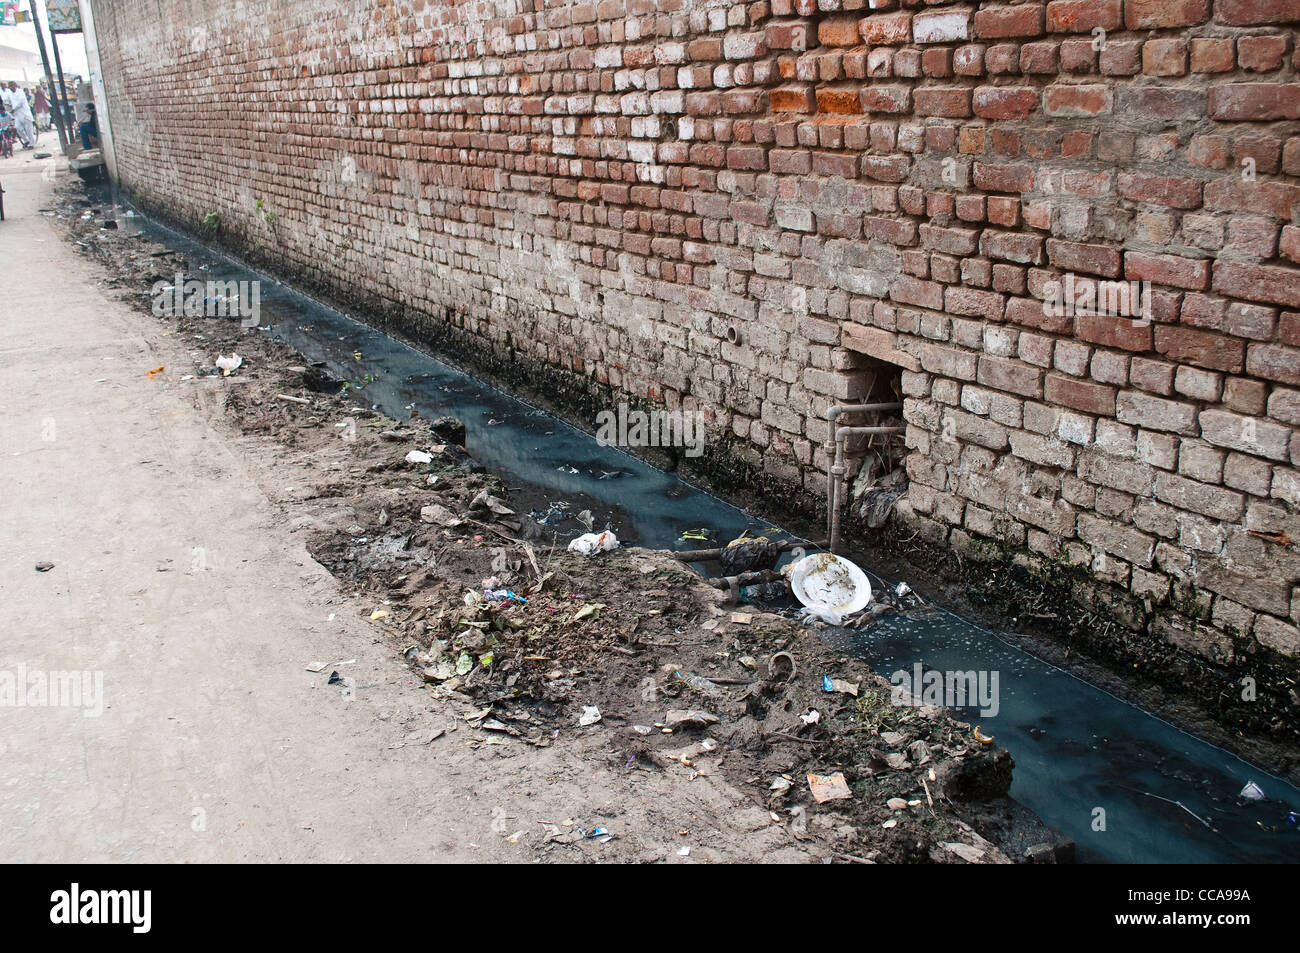 Open sewer, Vrindavan, Uttar Pradesh, India - Stock Image